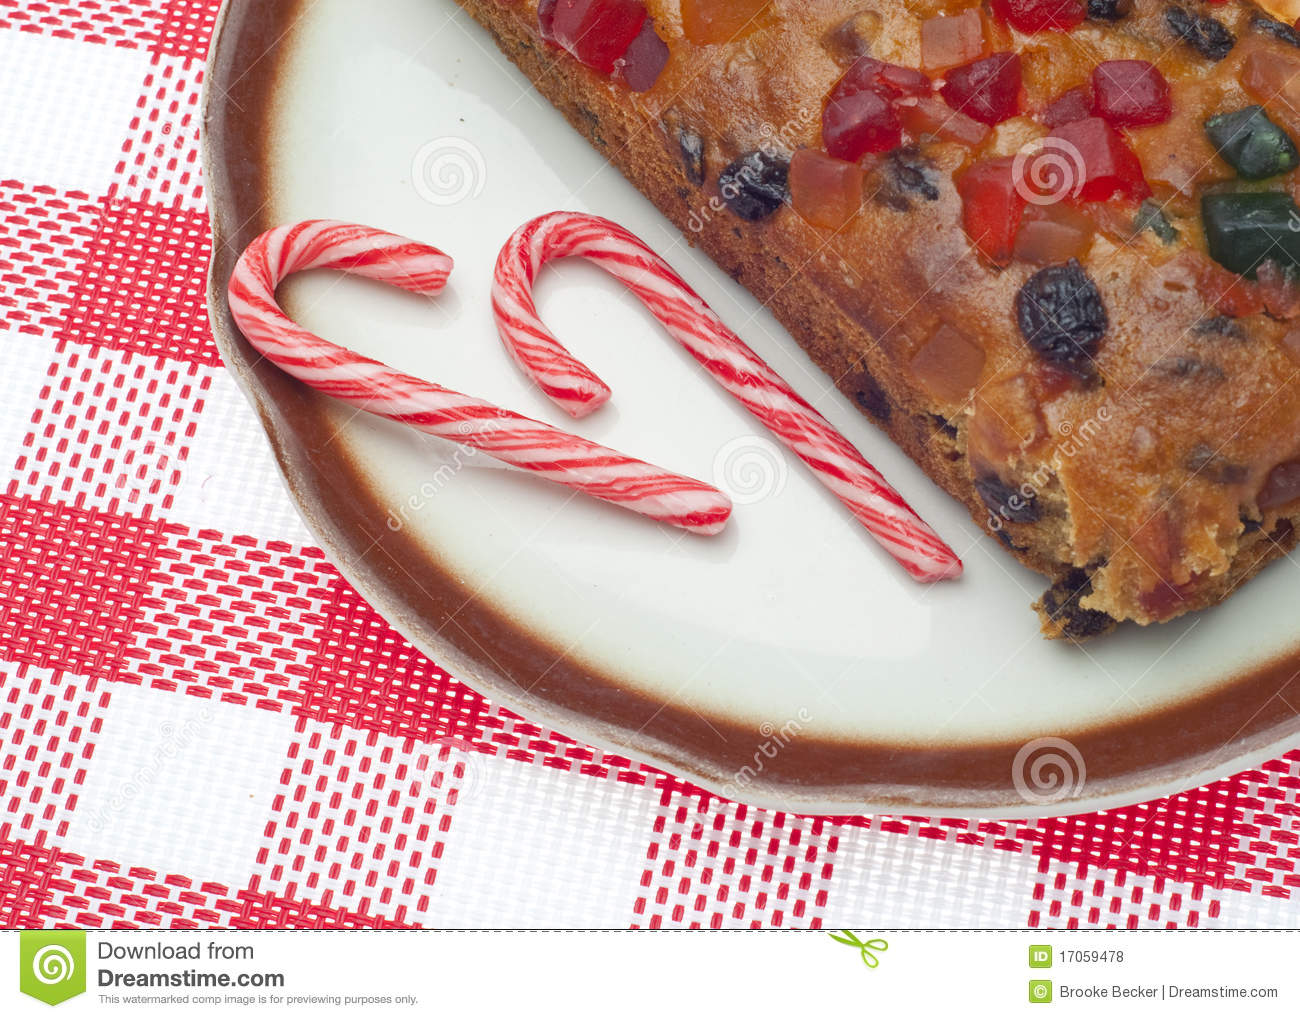 Where To Buy Candied Fruit For Fruit Cake